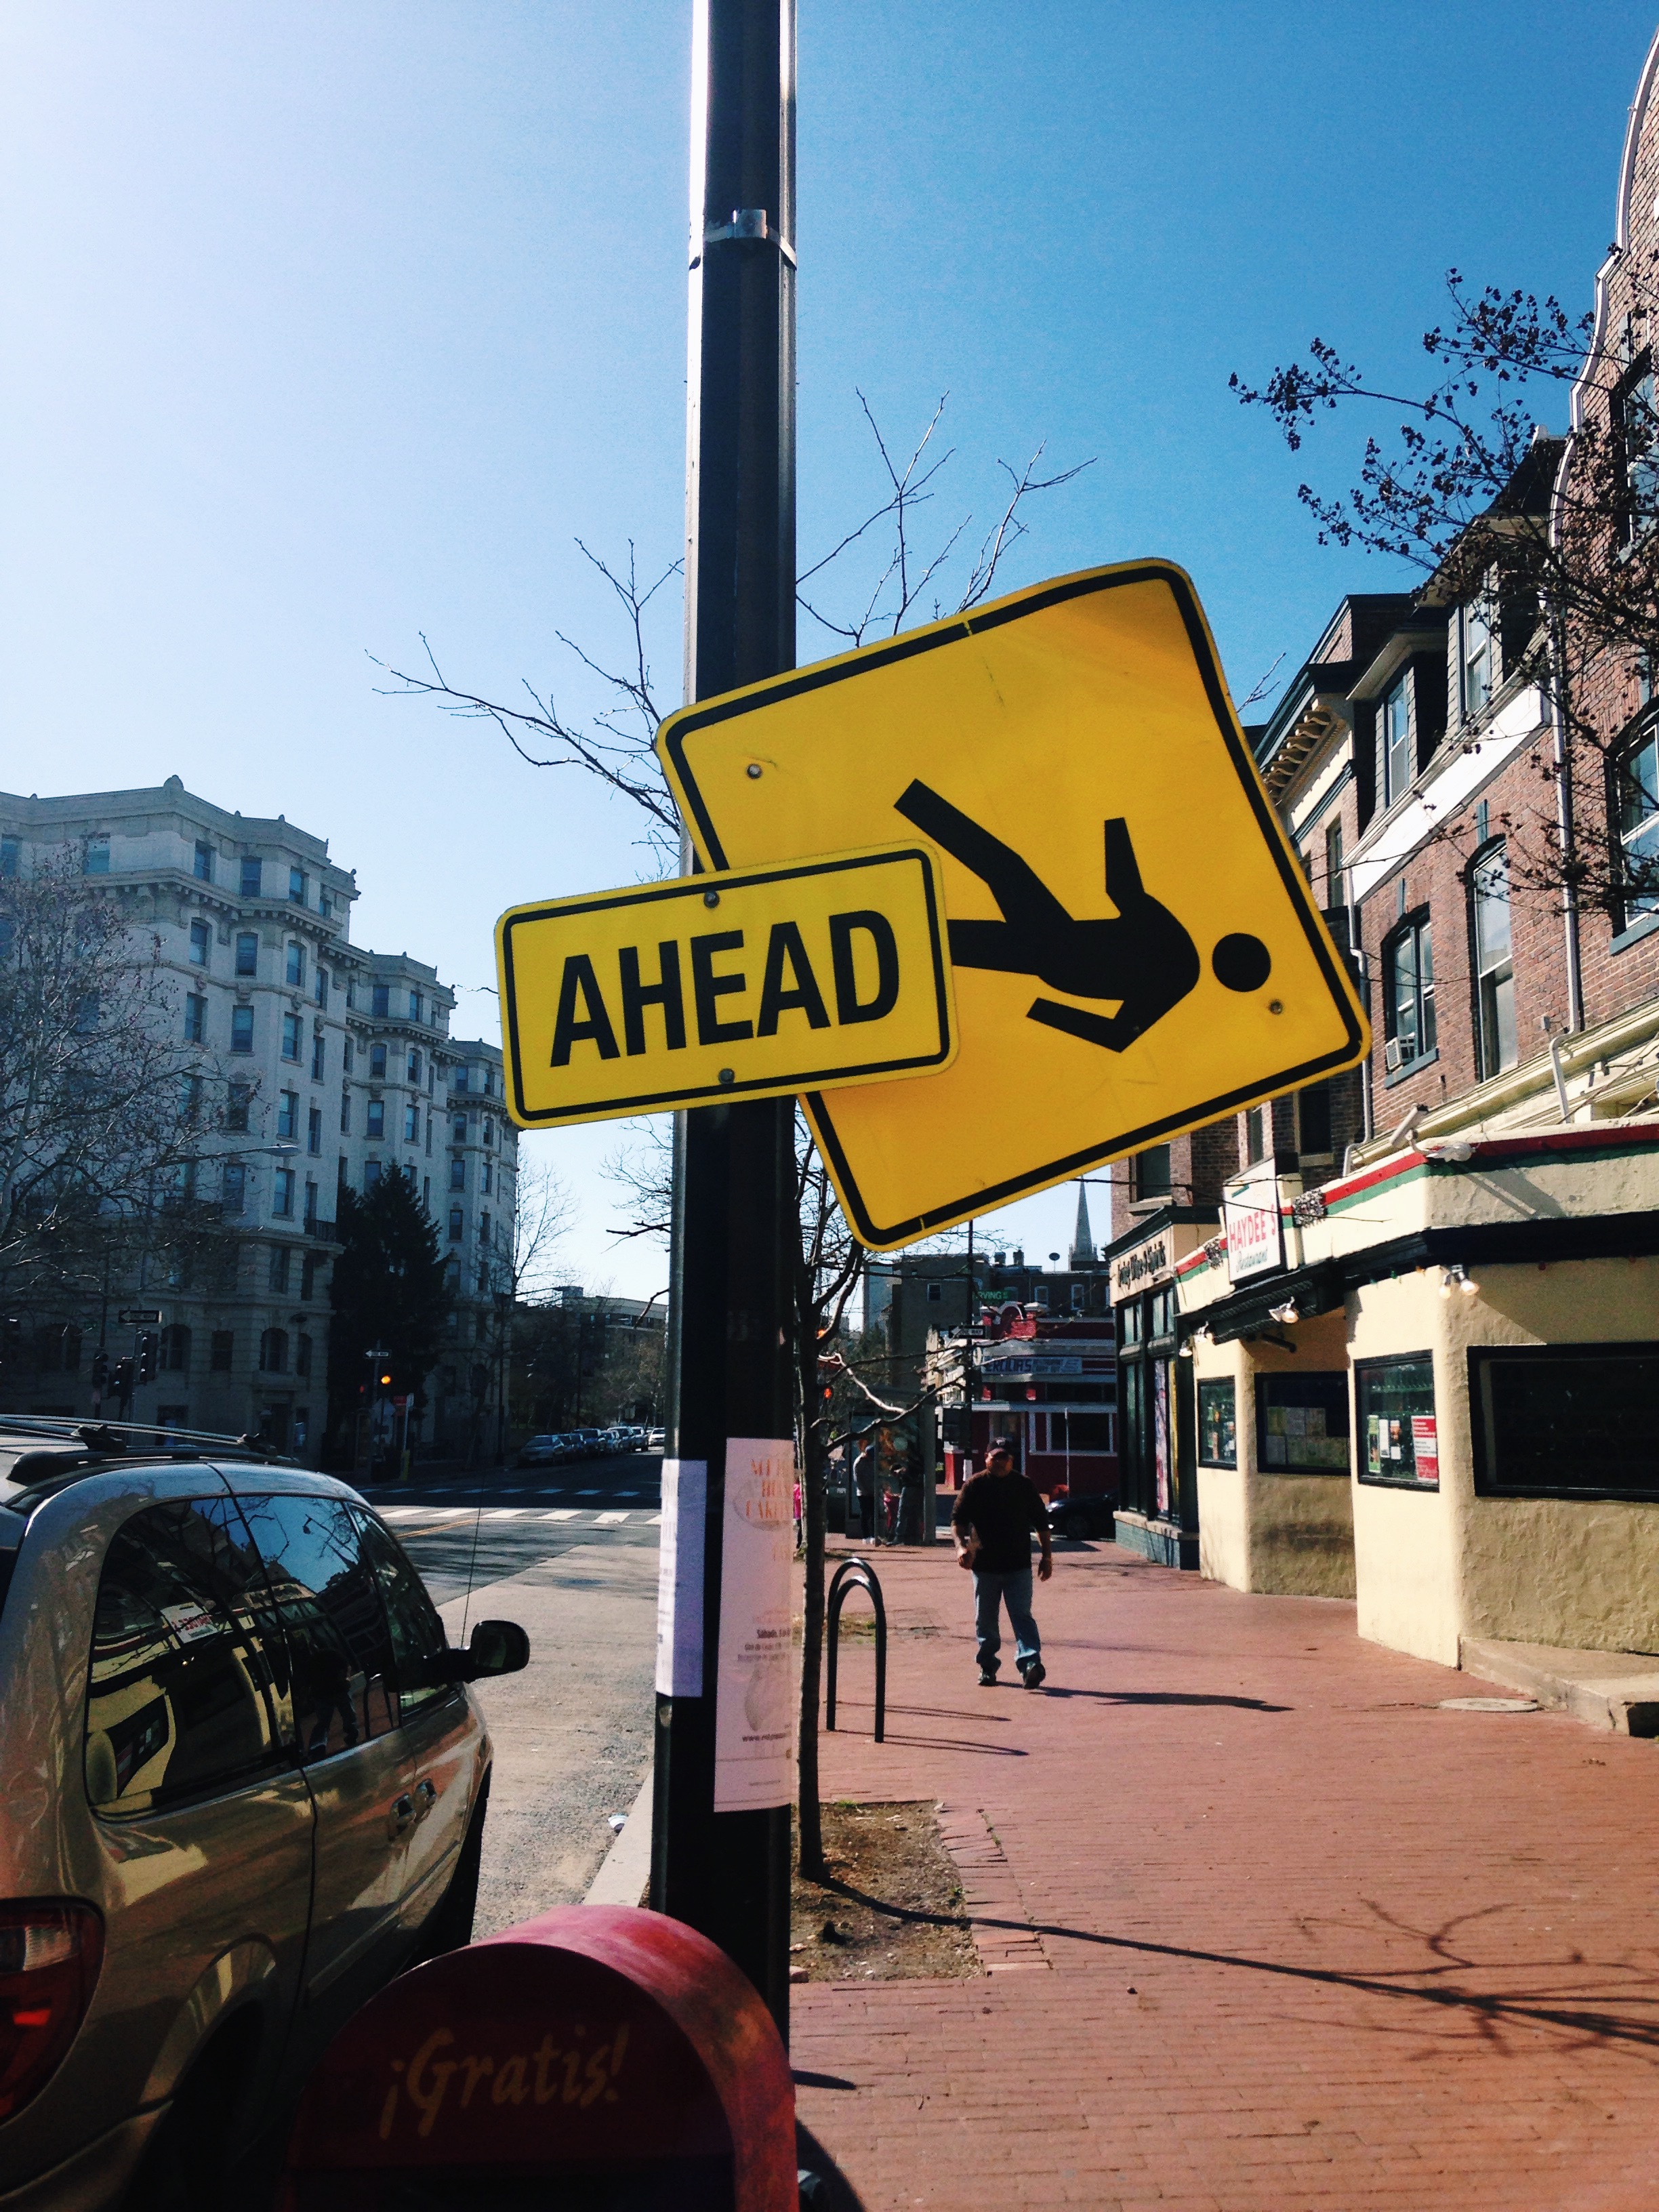 D.C. road signs mirror reality. © E.A. Crunden